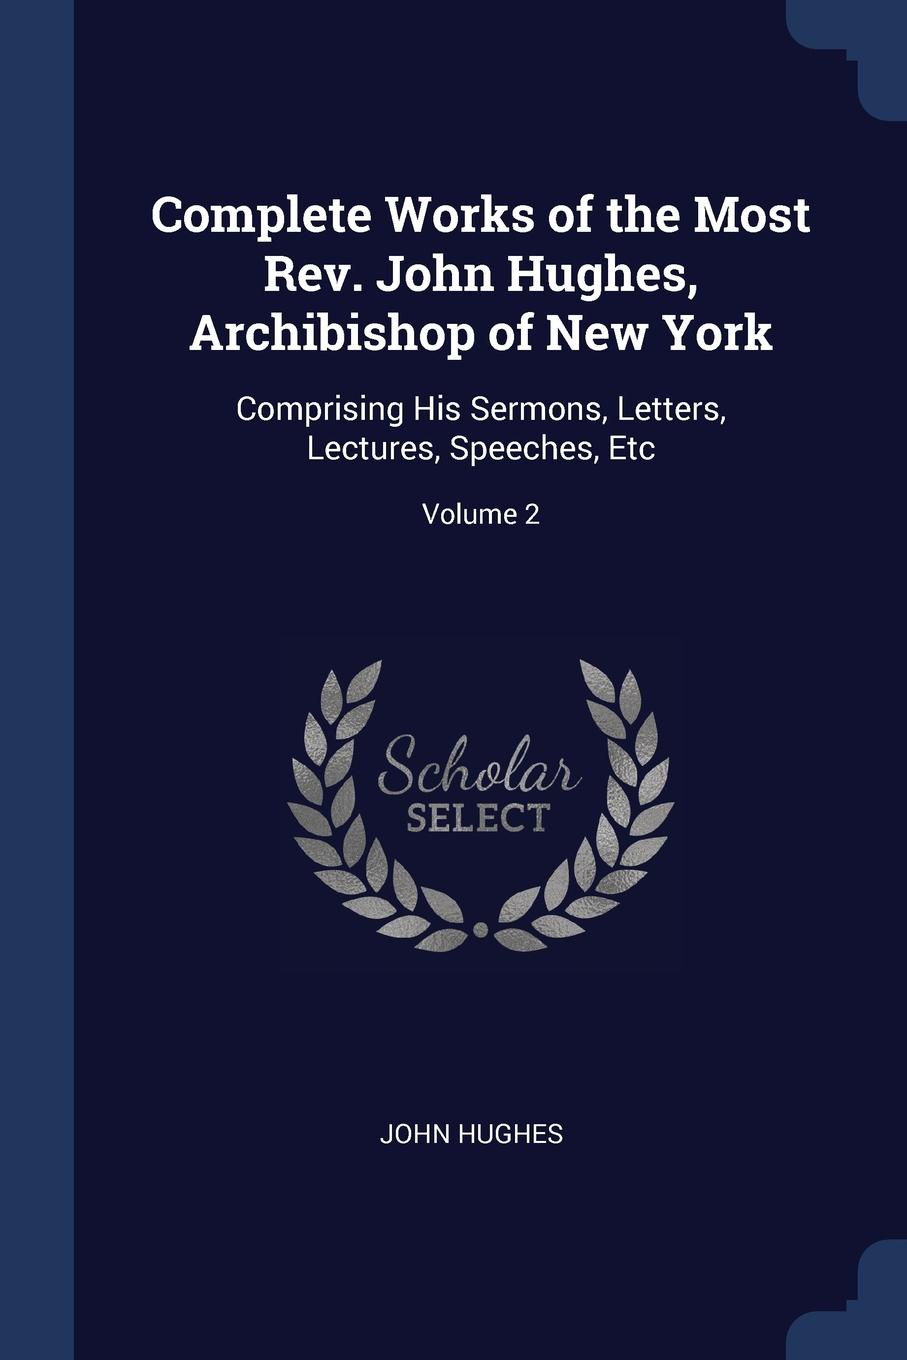 John Hughes Complete Works of the Most Rev. Hughes, Archibishop New York. Comprising His Sermons, Letters, Lectures, Speeches, Etc; Volume 2